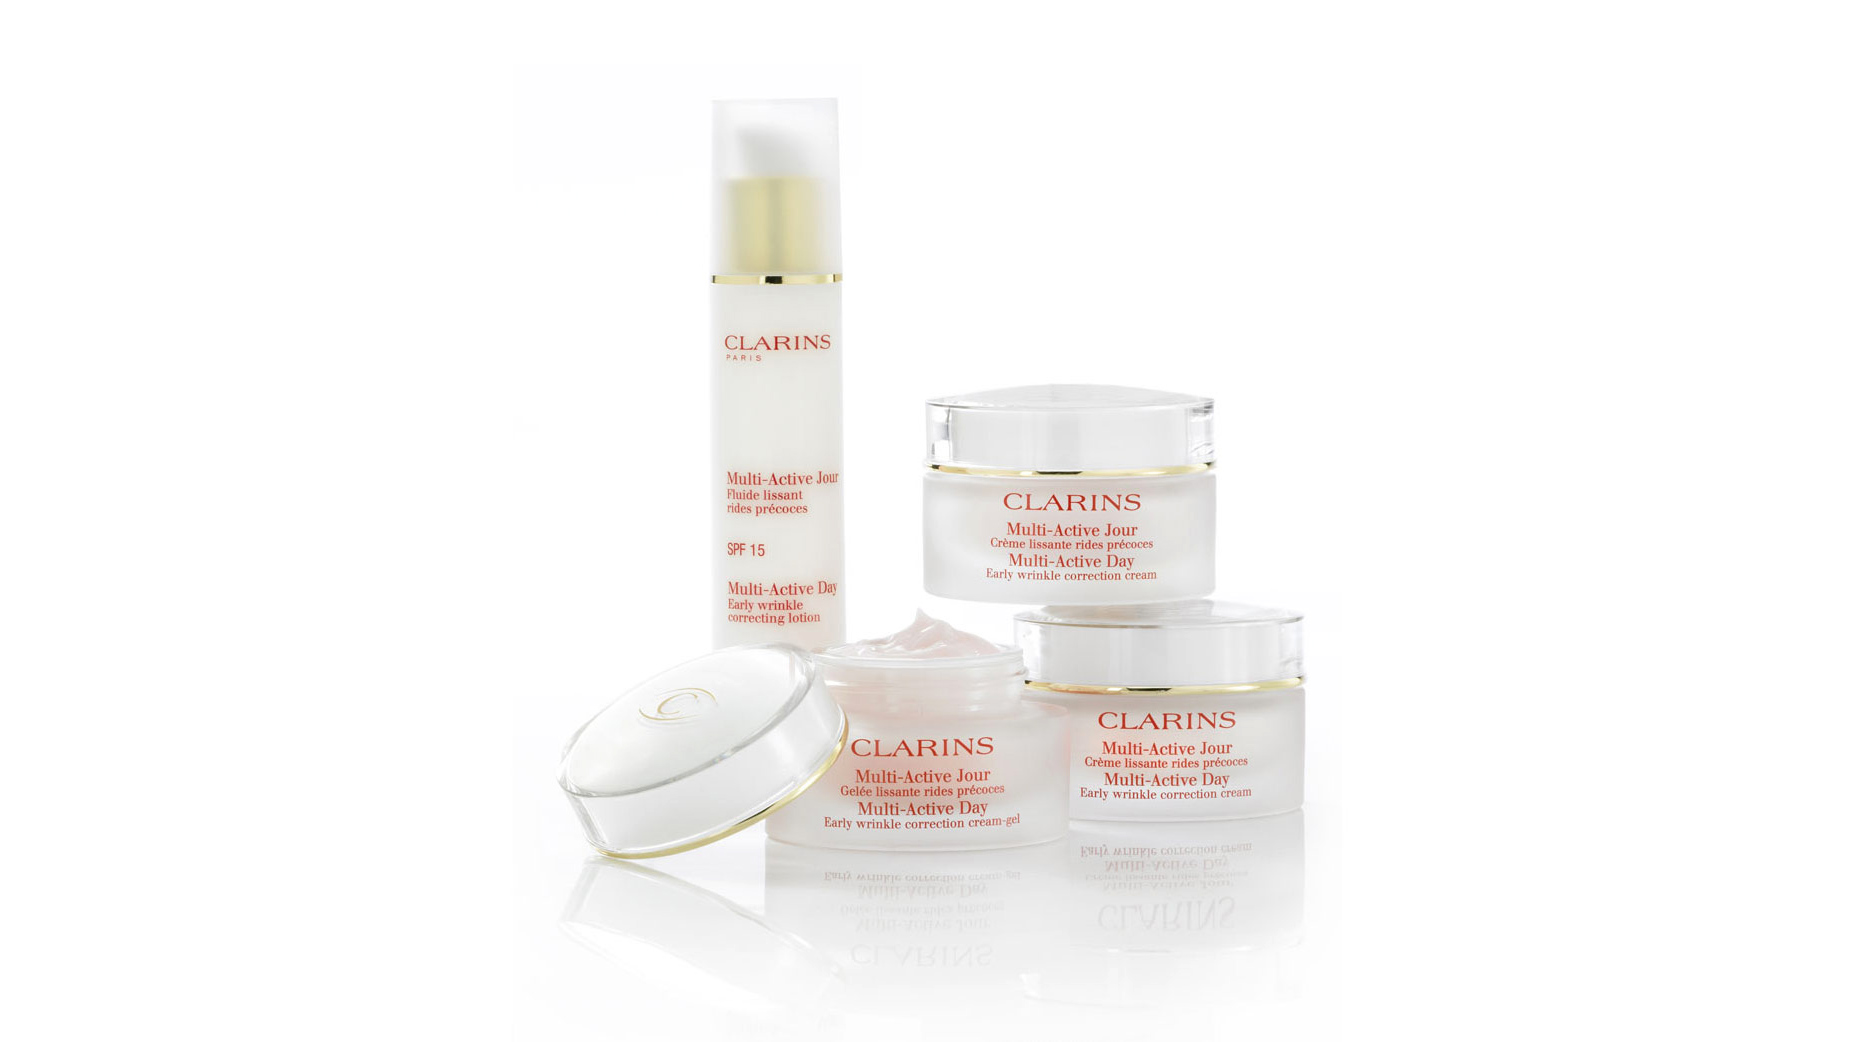 luis santana nyc still life photography Clarins -Multi-Active-Group-Nordstrom